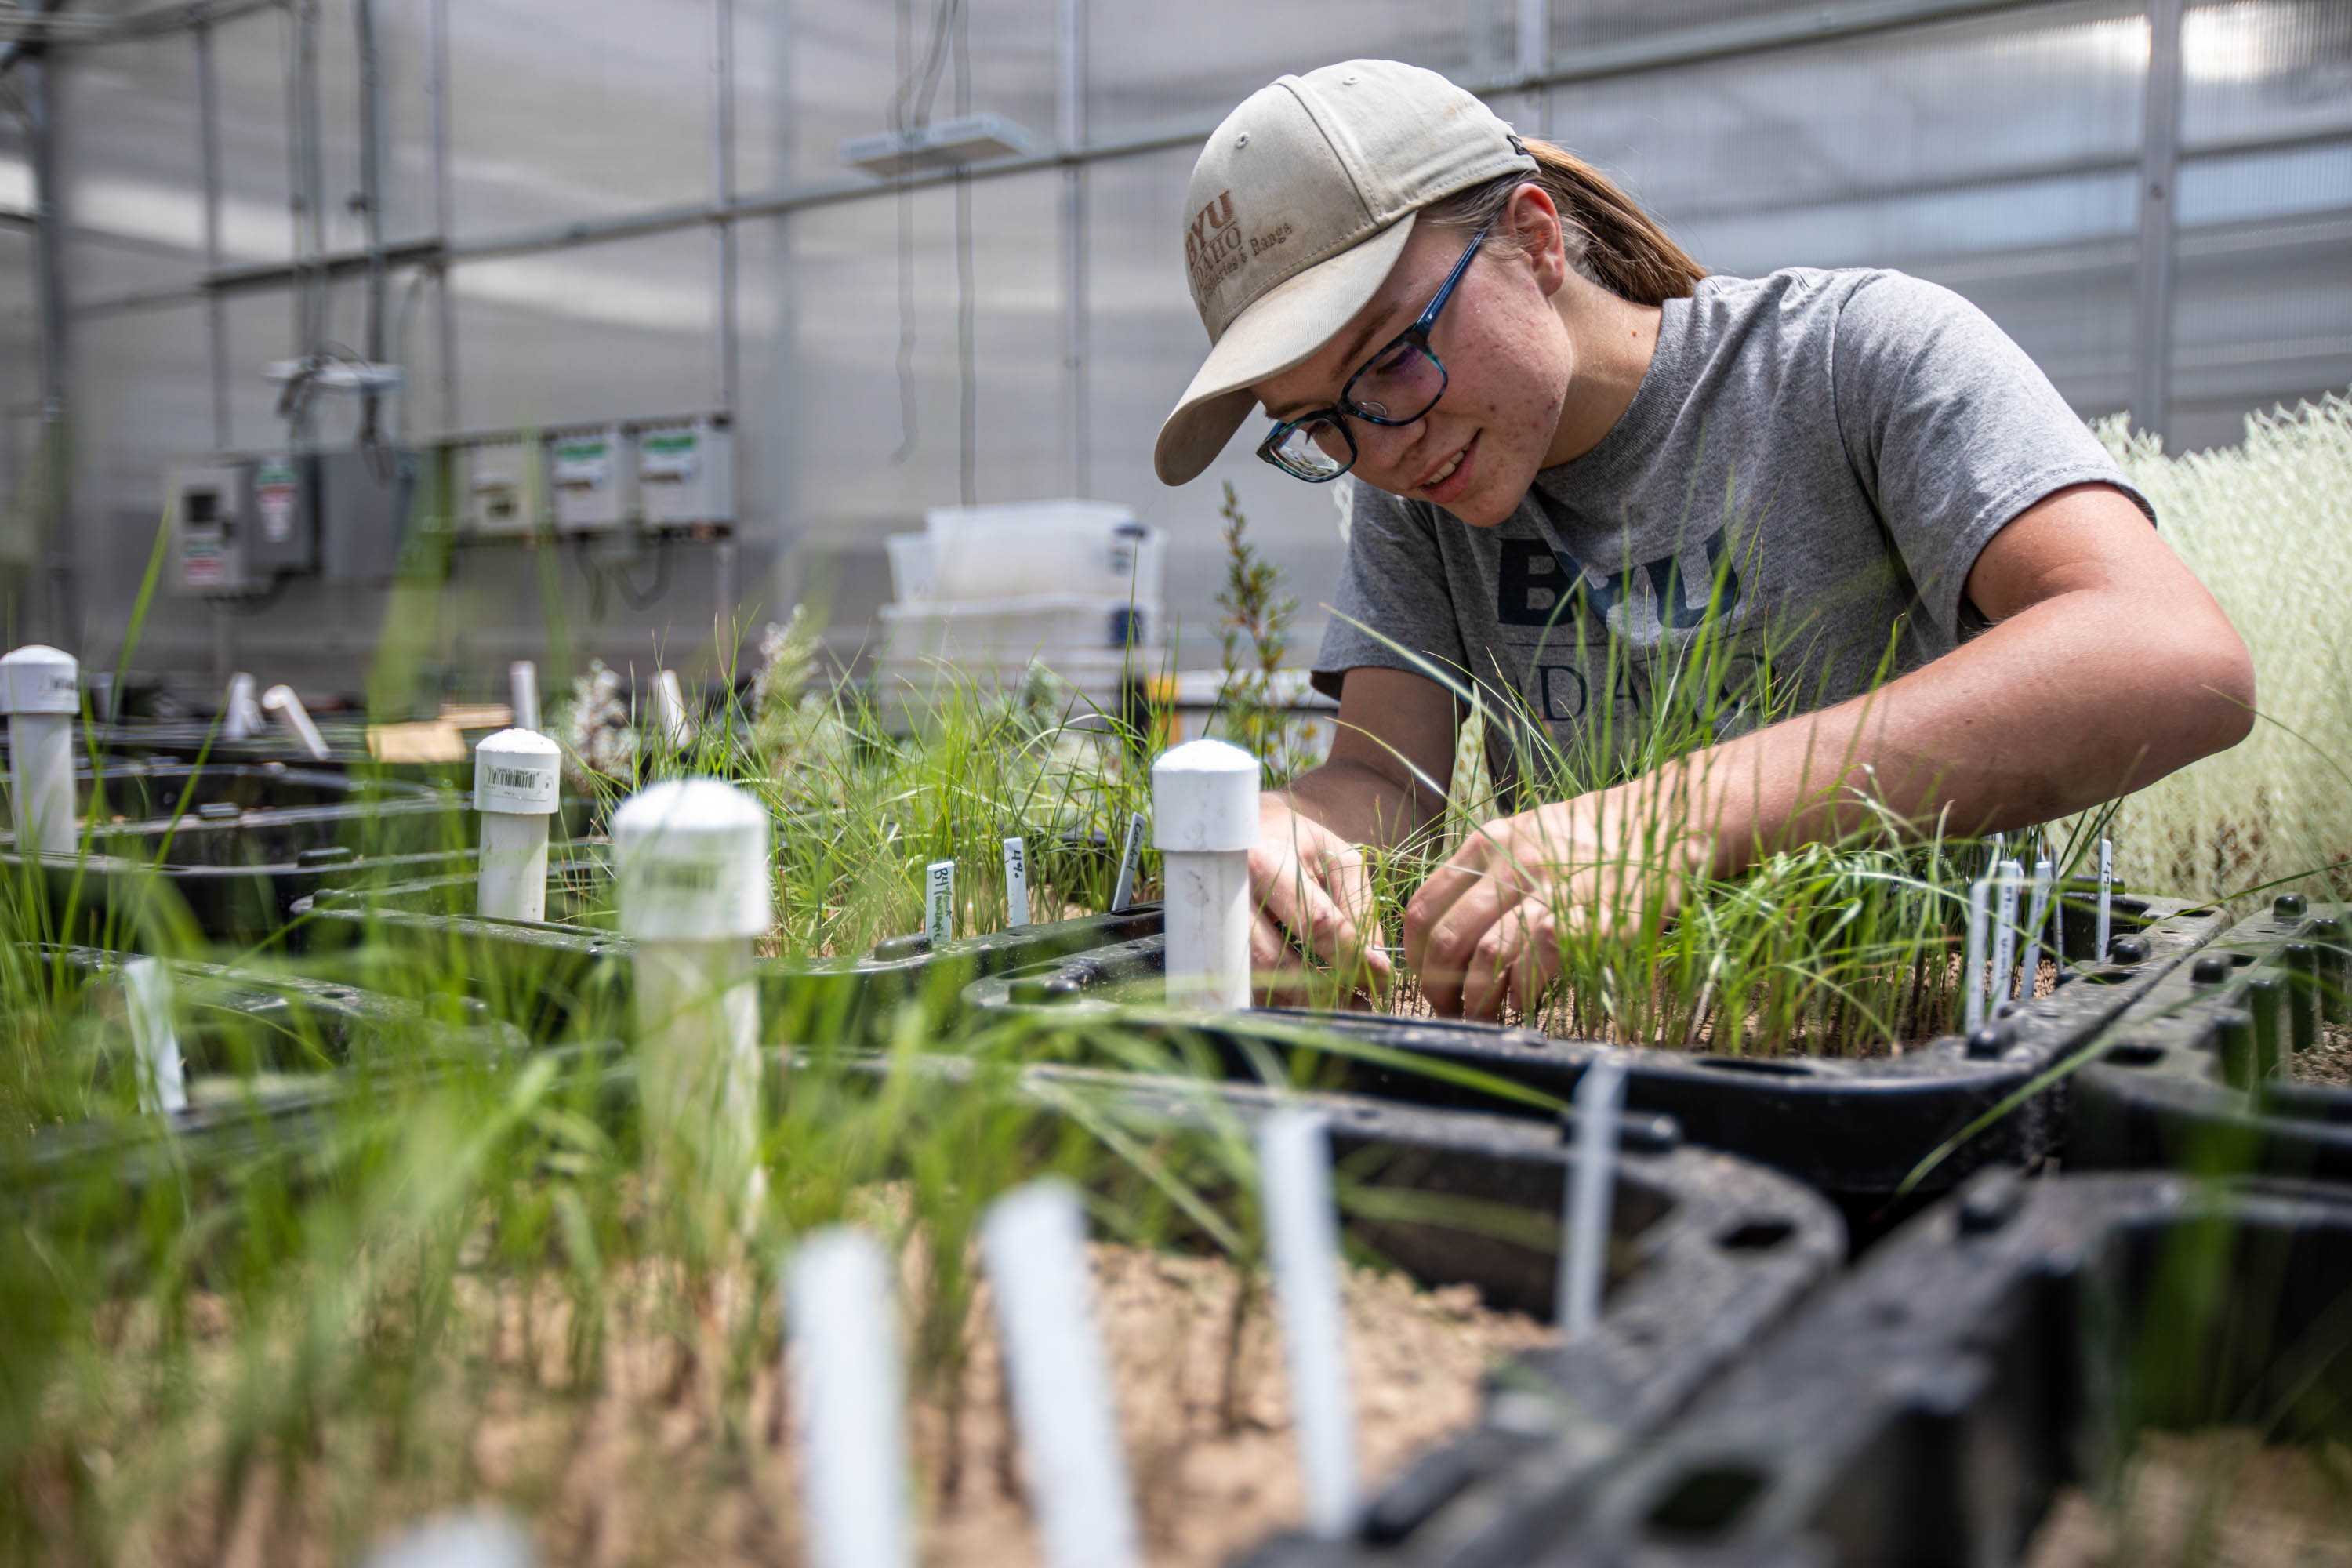 BYU graduate student Amber Johnson checks for new sprouts in a lab on the BYU campus in Provo on June 25, 2021. Rio Tinto Kennecott and Brigham Young University researchers are joining forces to develop innovative and sustainable solutions to improve reclamation at the Bingham Canyon Mine. In June 2020, a group of students and professors from the BYU Department of Plant and Wildlife Sciences broke ground on four research projects on land areas surrounding the mine with the goal to increase plant diversity, stability and enhance the aesthetics of areas visible from the Salt Lake Valley.